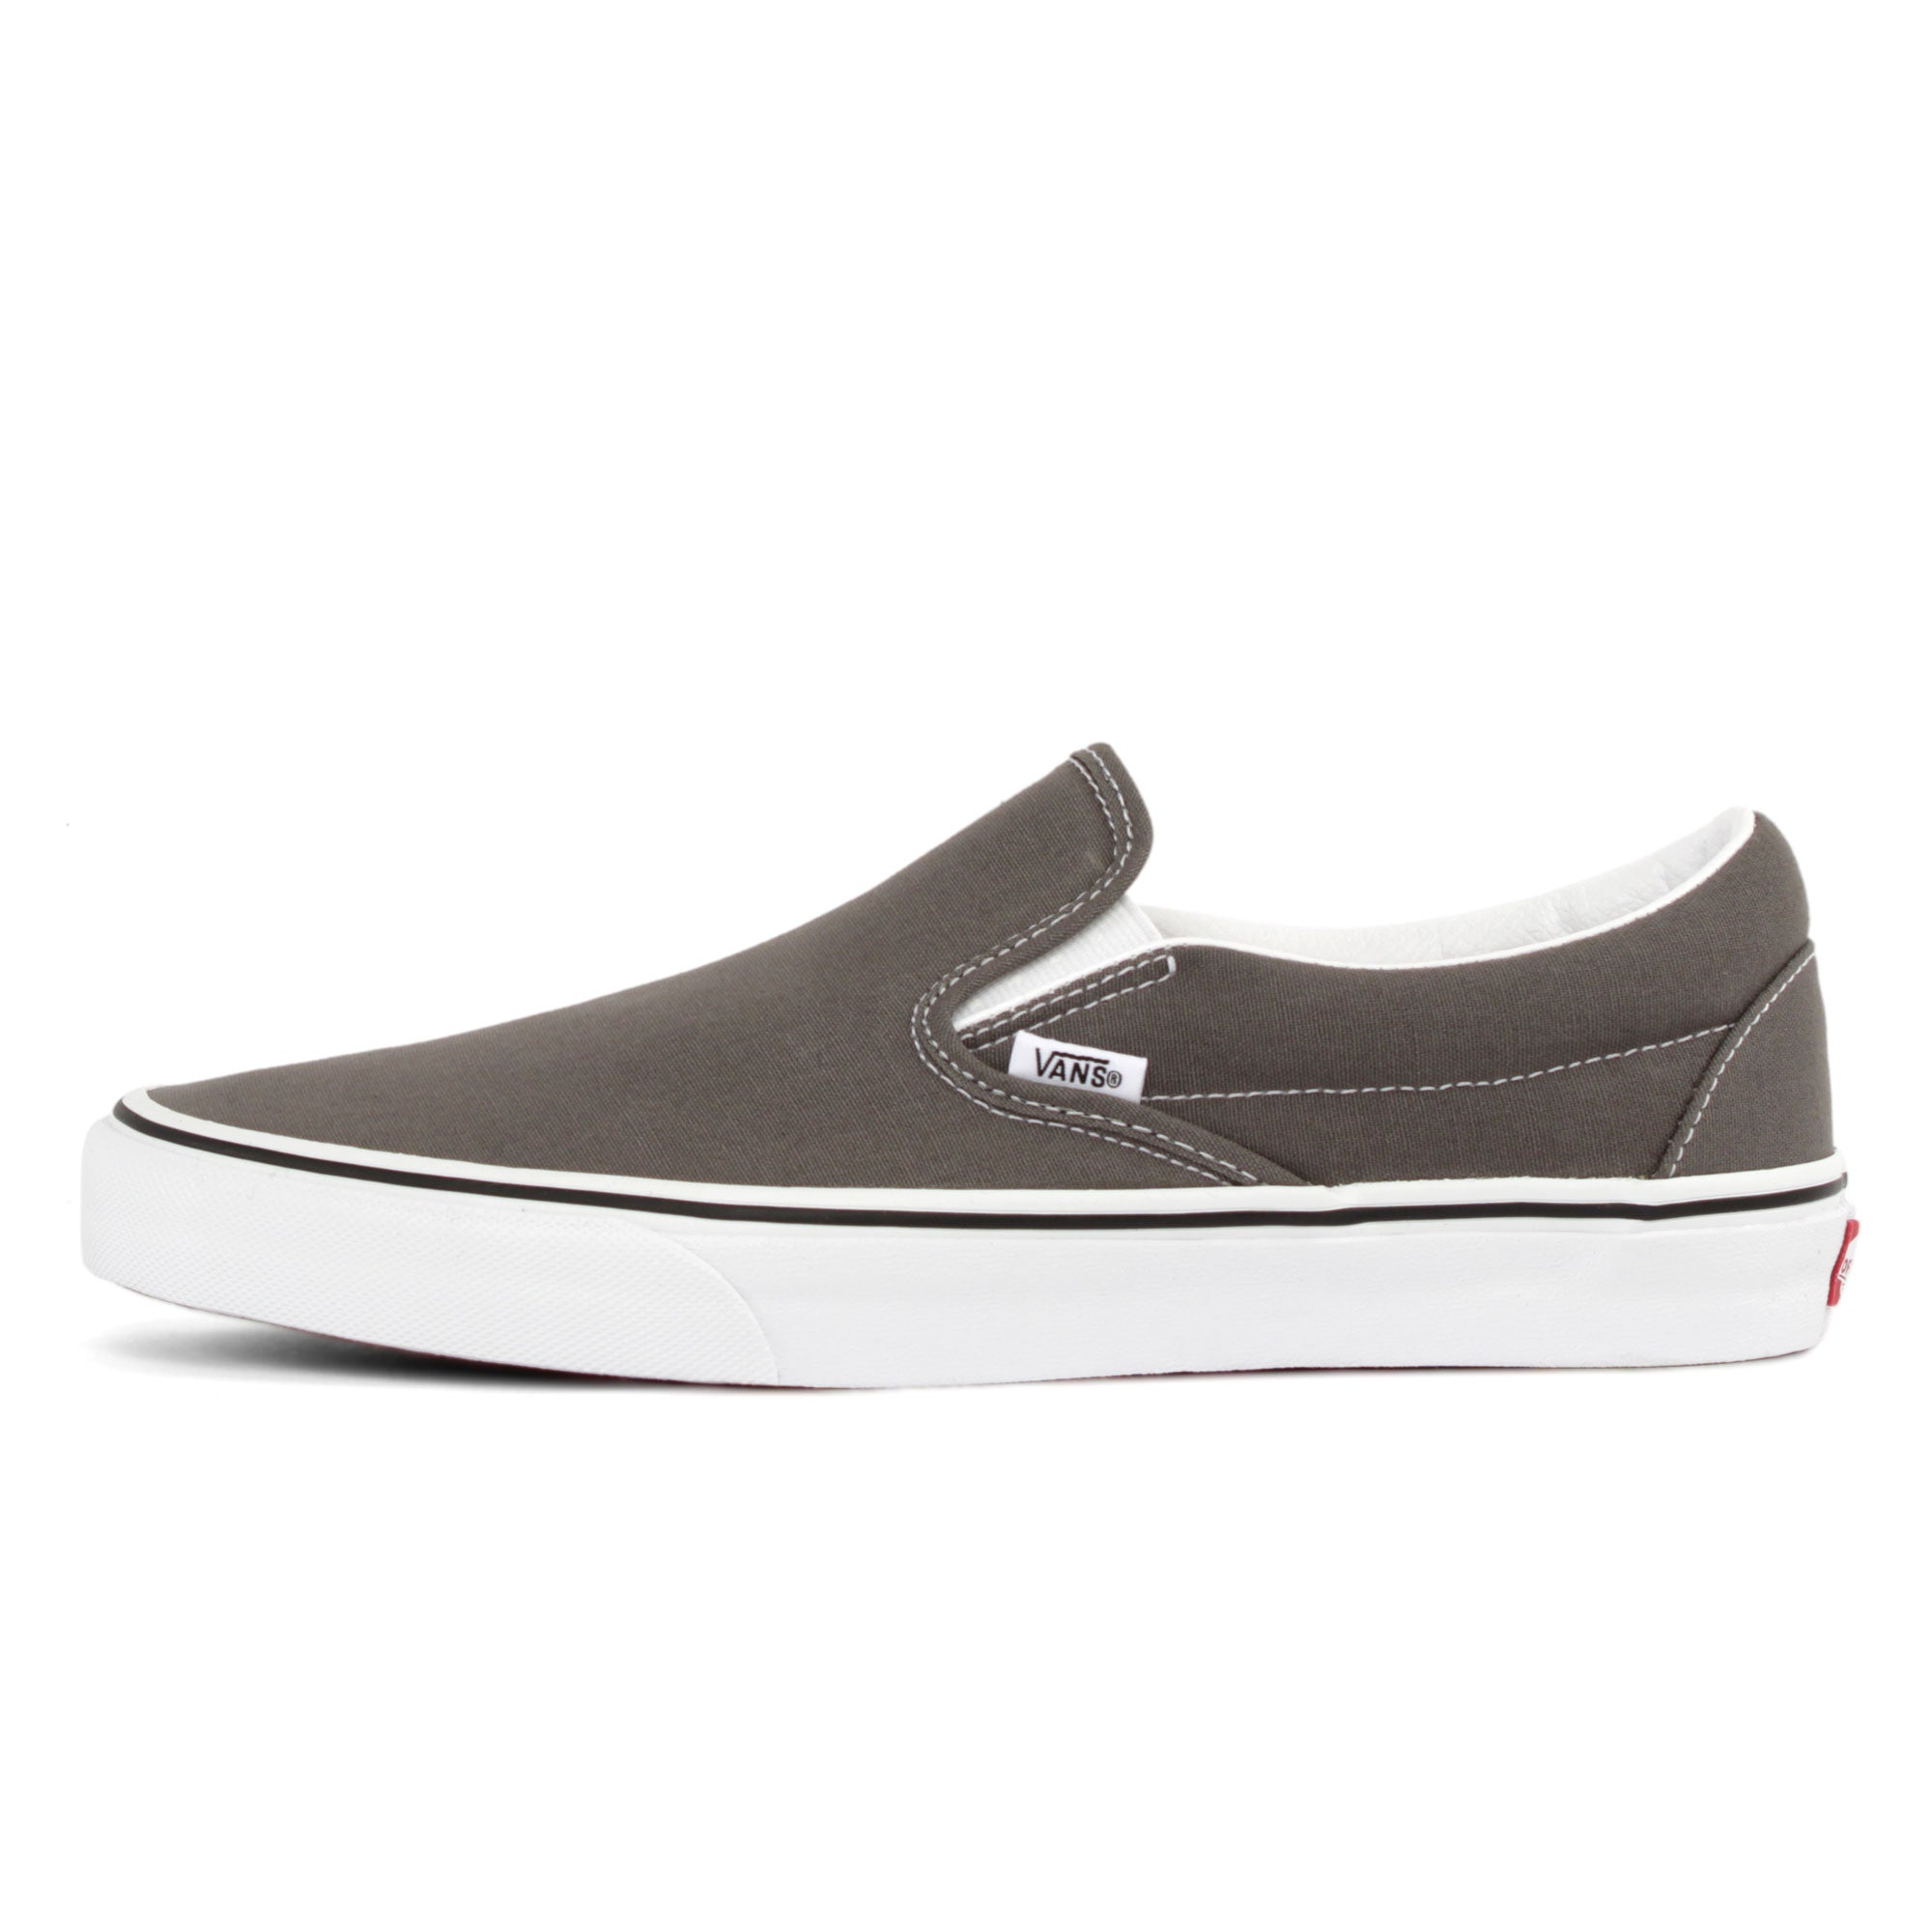 Vans Classic Slip-On Product Photo #1